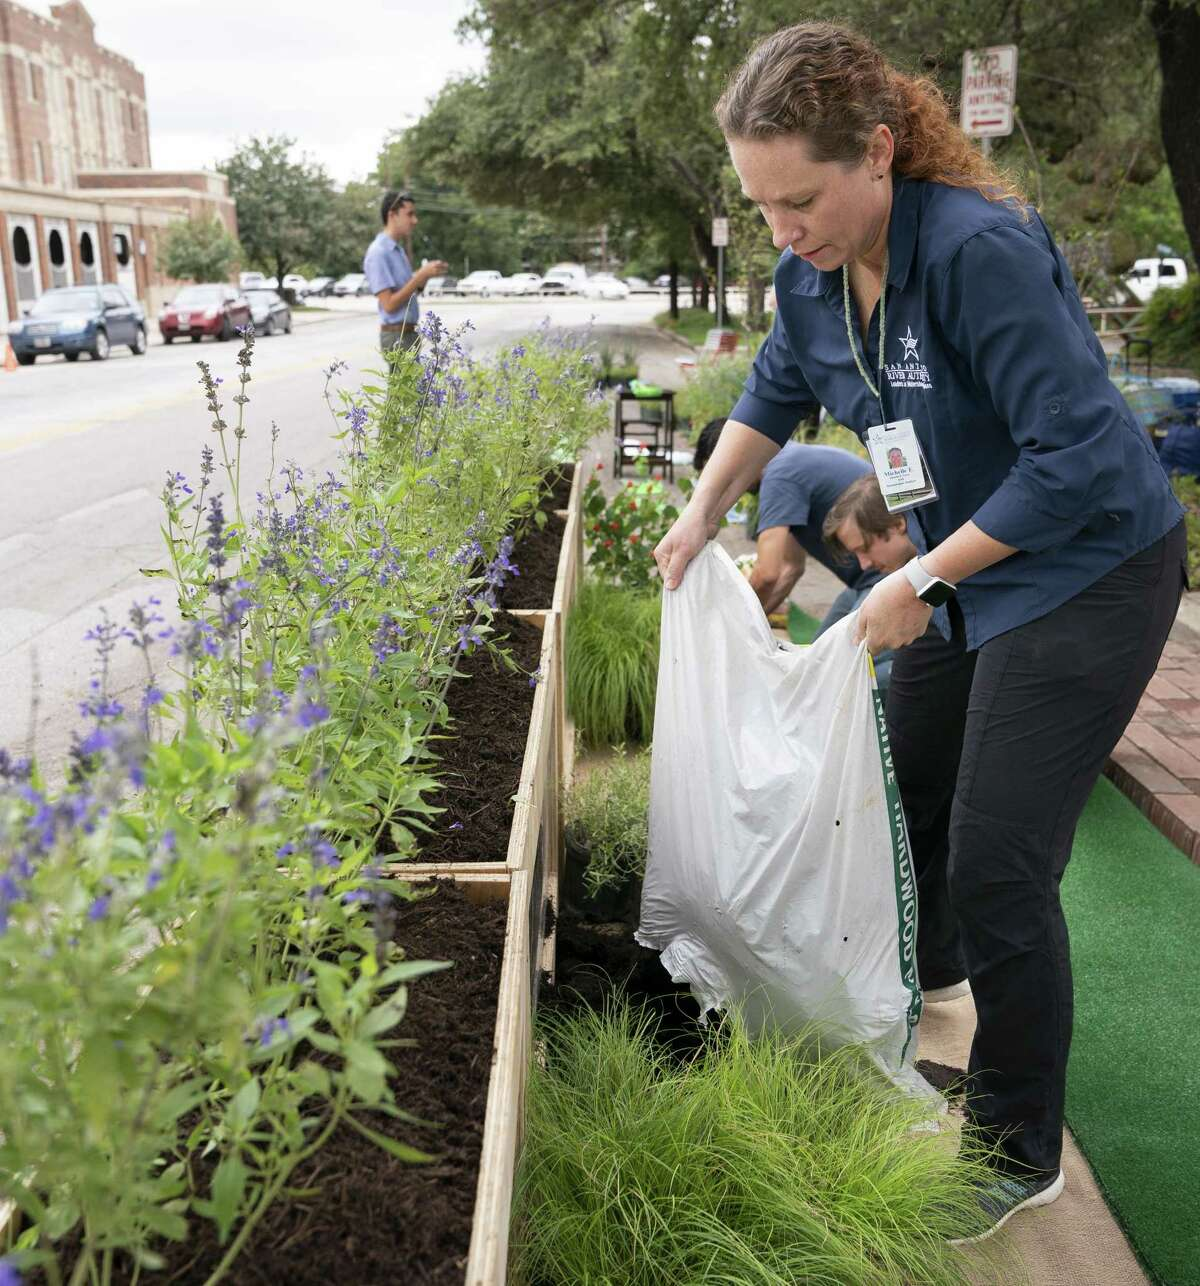 Stormwater analyst Michelle Garza helps prepare a tiny park that the San Antonio River Authority designed with local architects. The small park was fashioned from a curbside parking space along McCullough Avenue. The effort was part of Friday's PARK(ing) Day event, which aims to make urban spaces in cities across the country more inviting and walkable.